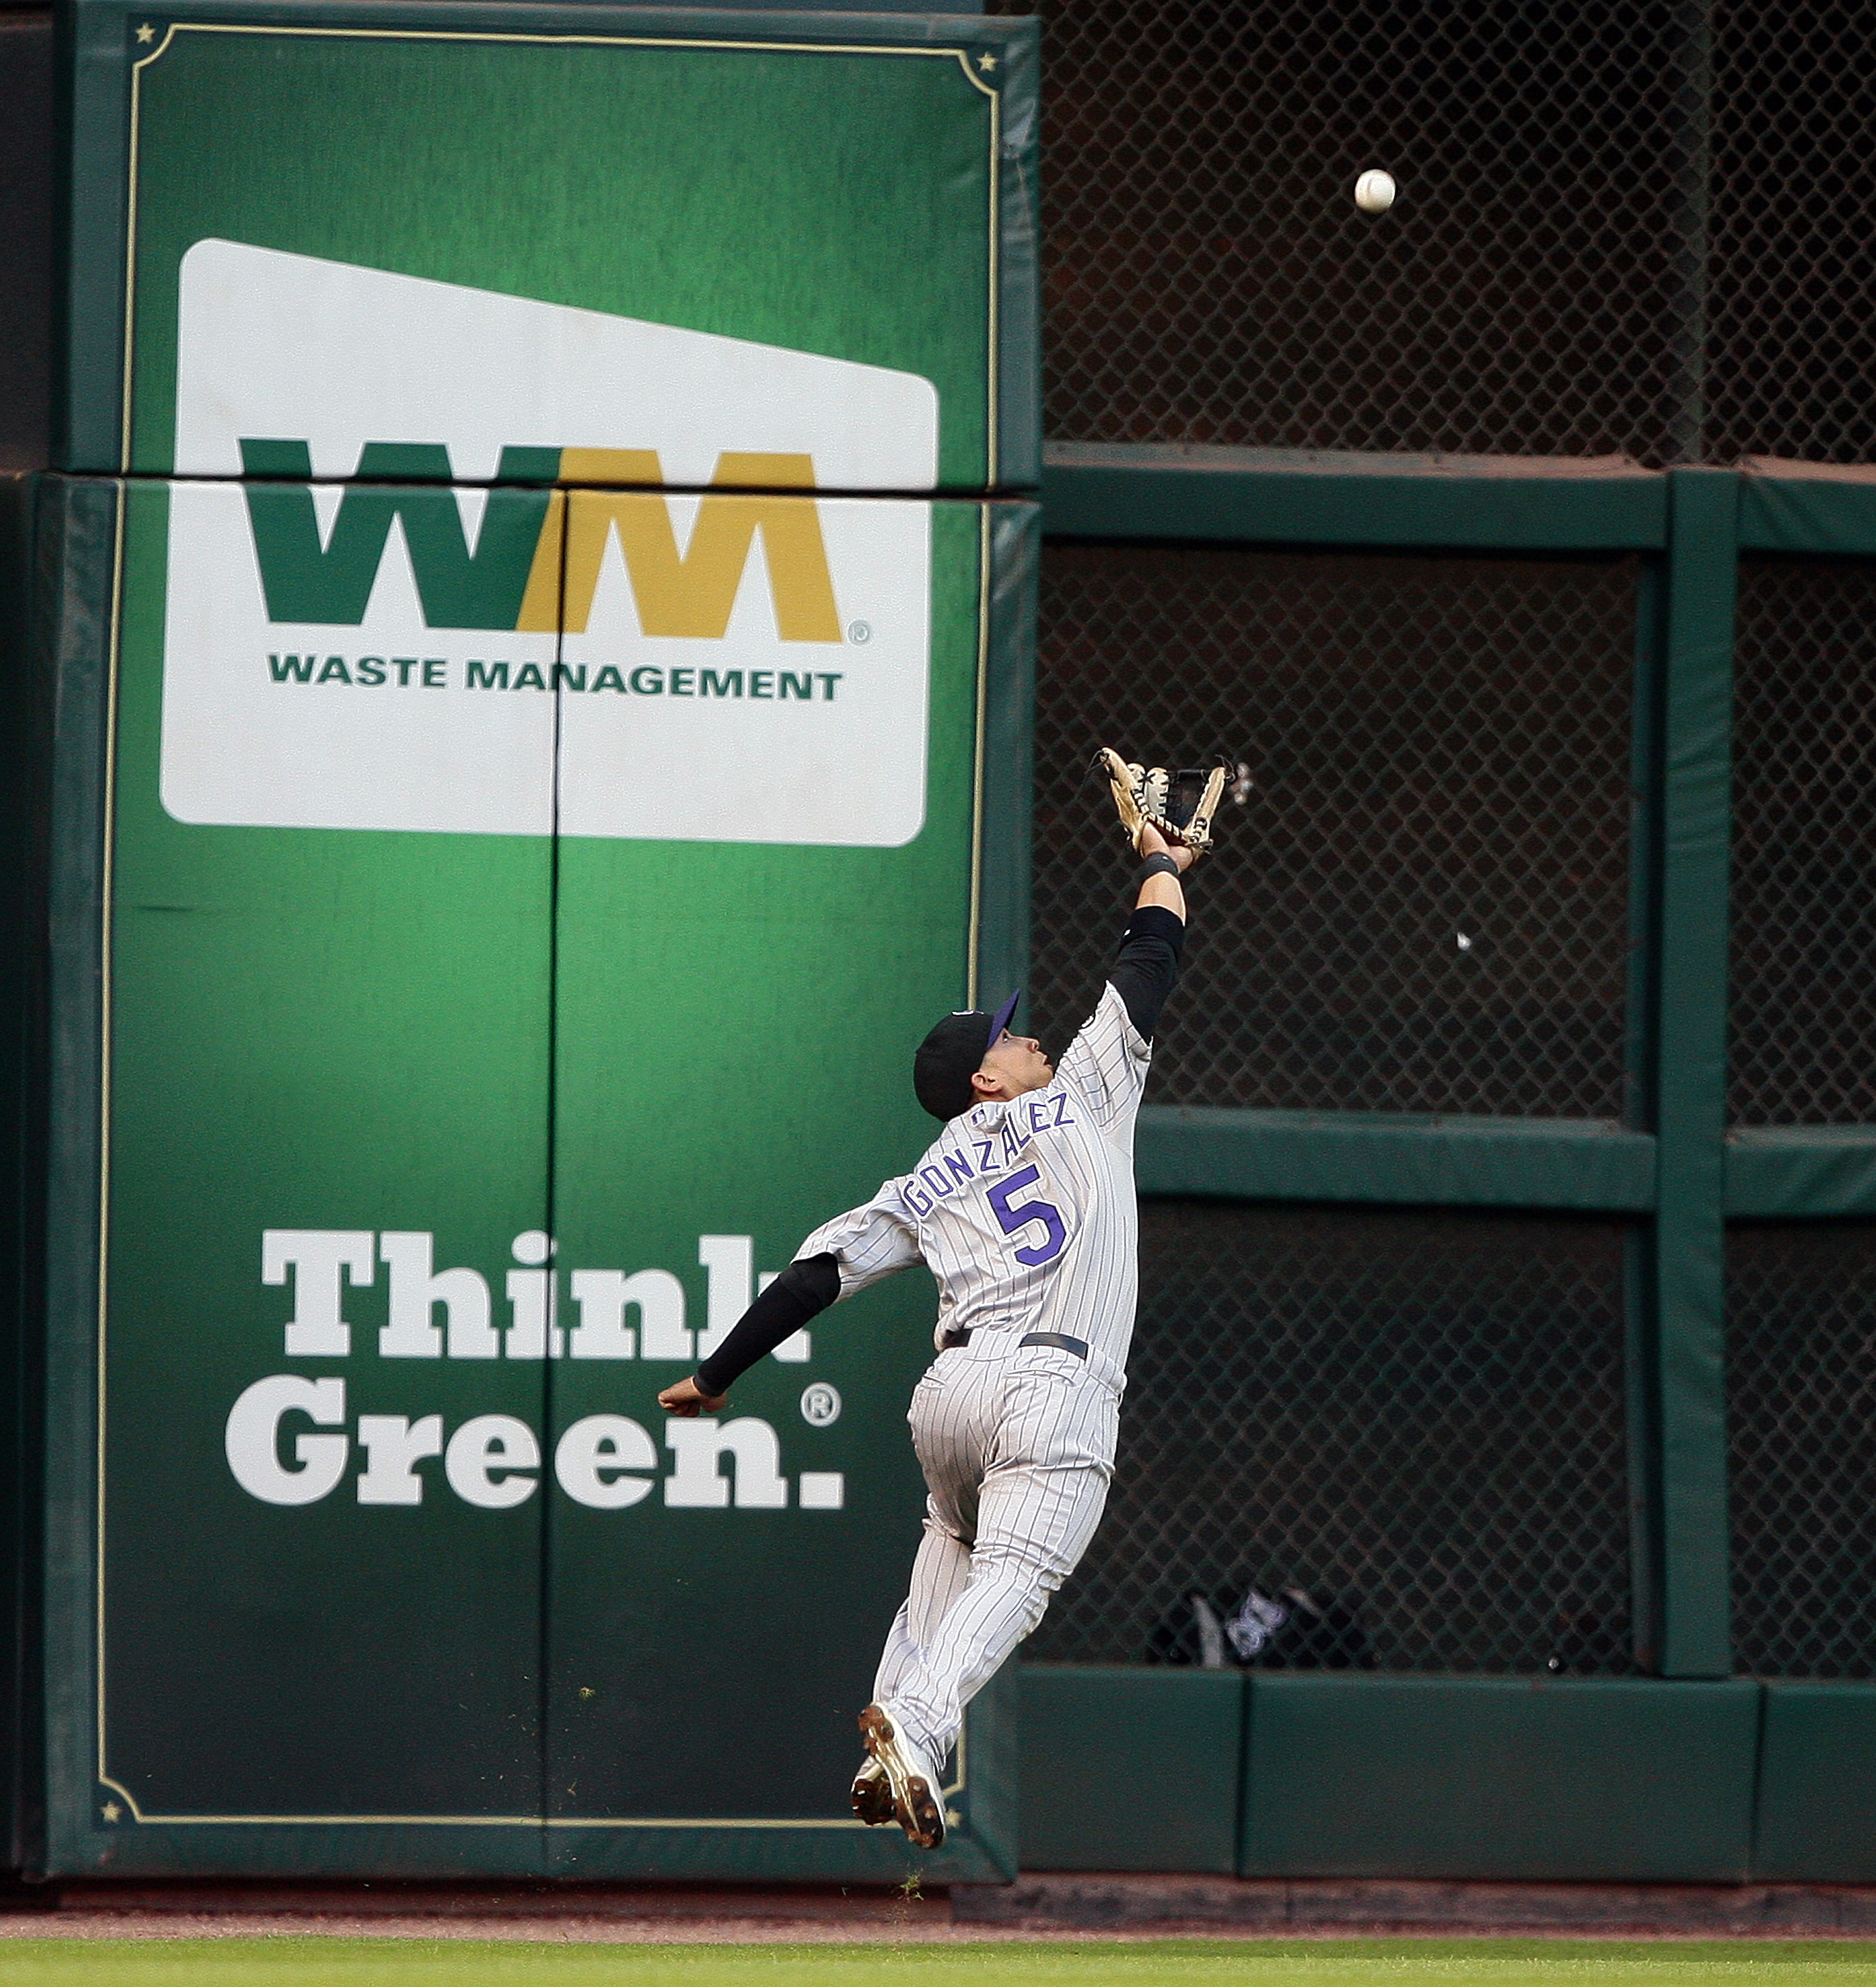 HOUSTON - MAY 19:  Left fielder Carlos Gonzalez #5 of the Colorado Rockies can't reach a hard hit ball by Tommy Manzella of the Houston Astros at Minute Maid Park on May 19, 2010 in Houston, Texas.  (Photo by Bob Levey/Getty Images)